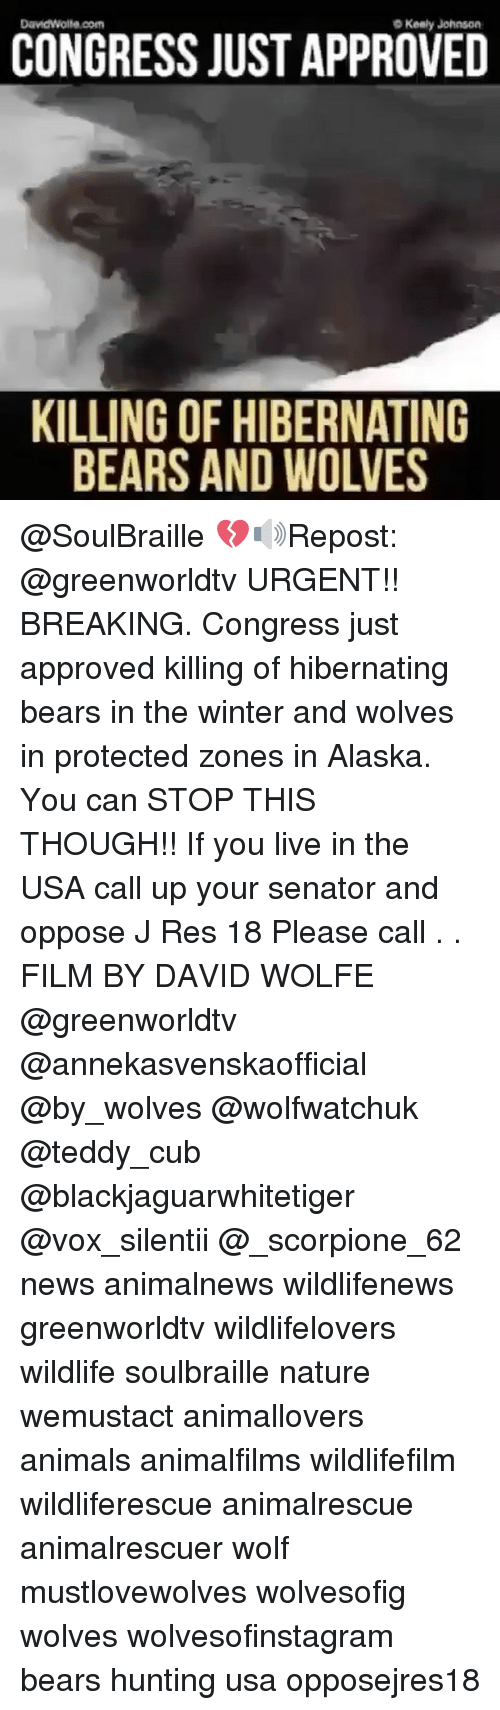 congress just approved killing of hibernating bears and